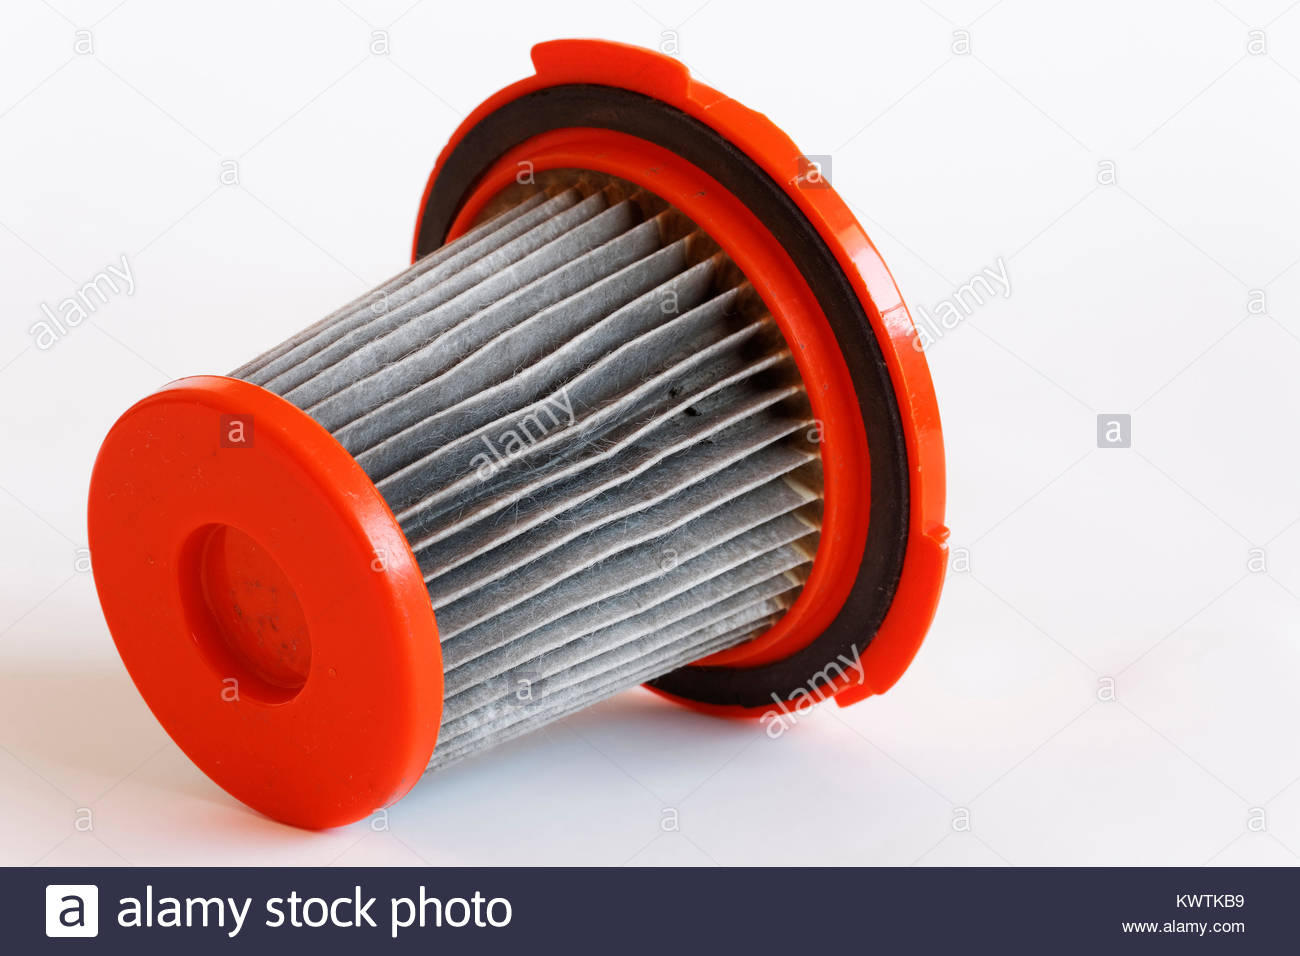 Close-up of clogged vacuum cleaner filter on white background - Stock Image